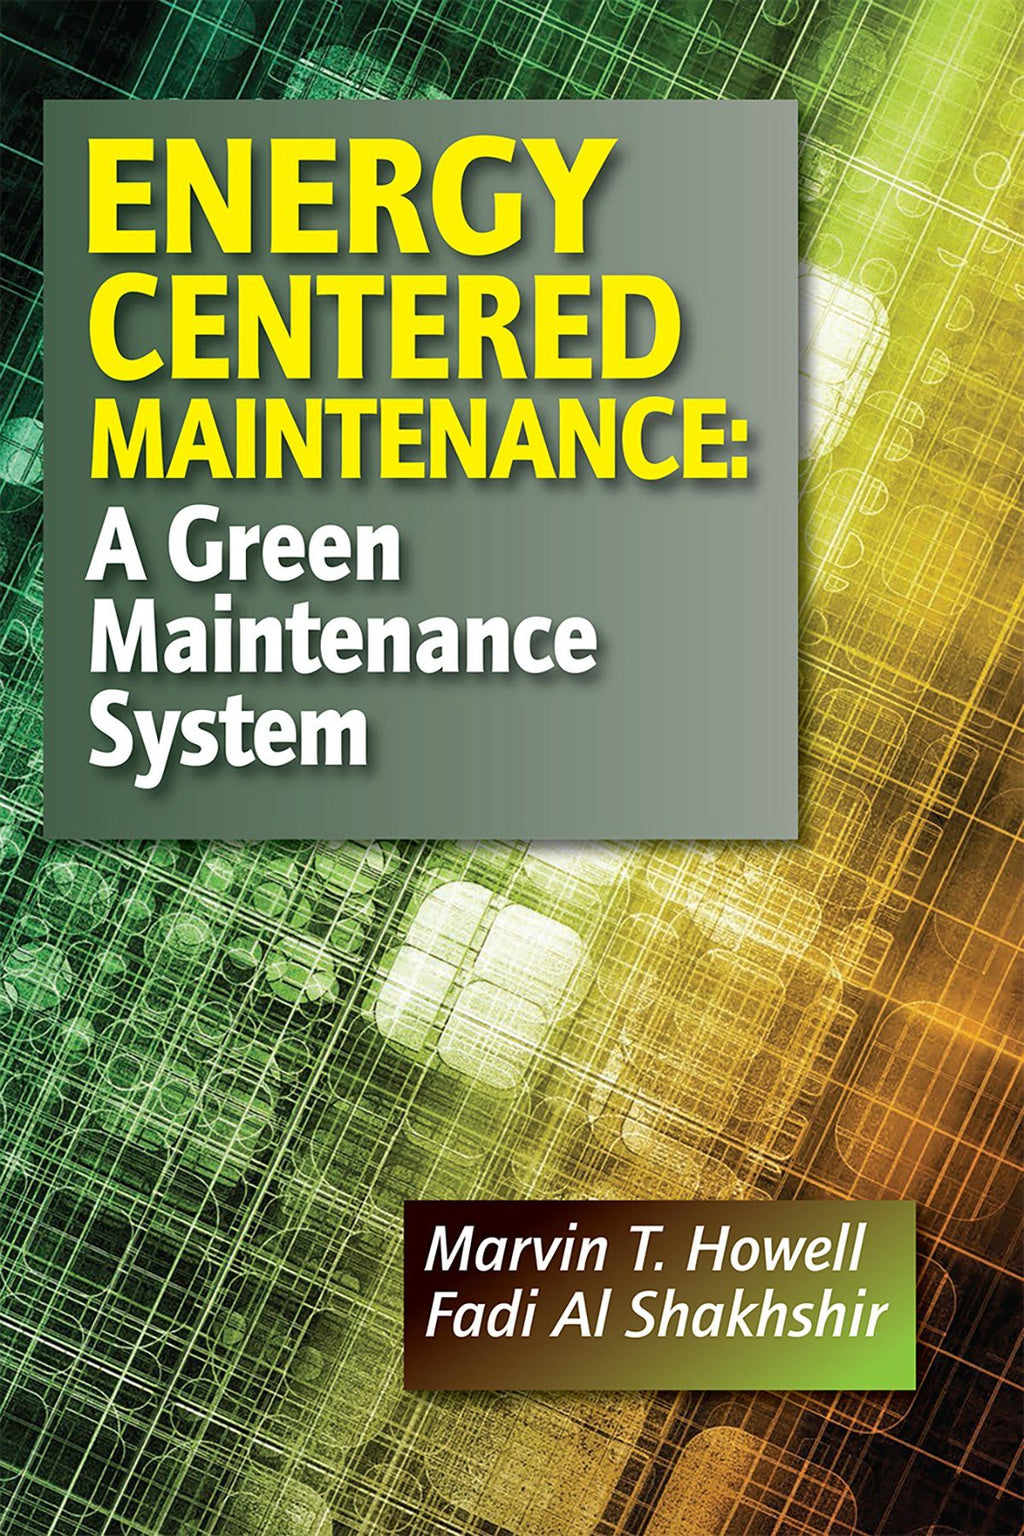 Energy Centered Maintenance: A Green Maintenance System - AEE Programs